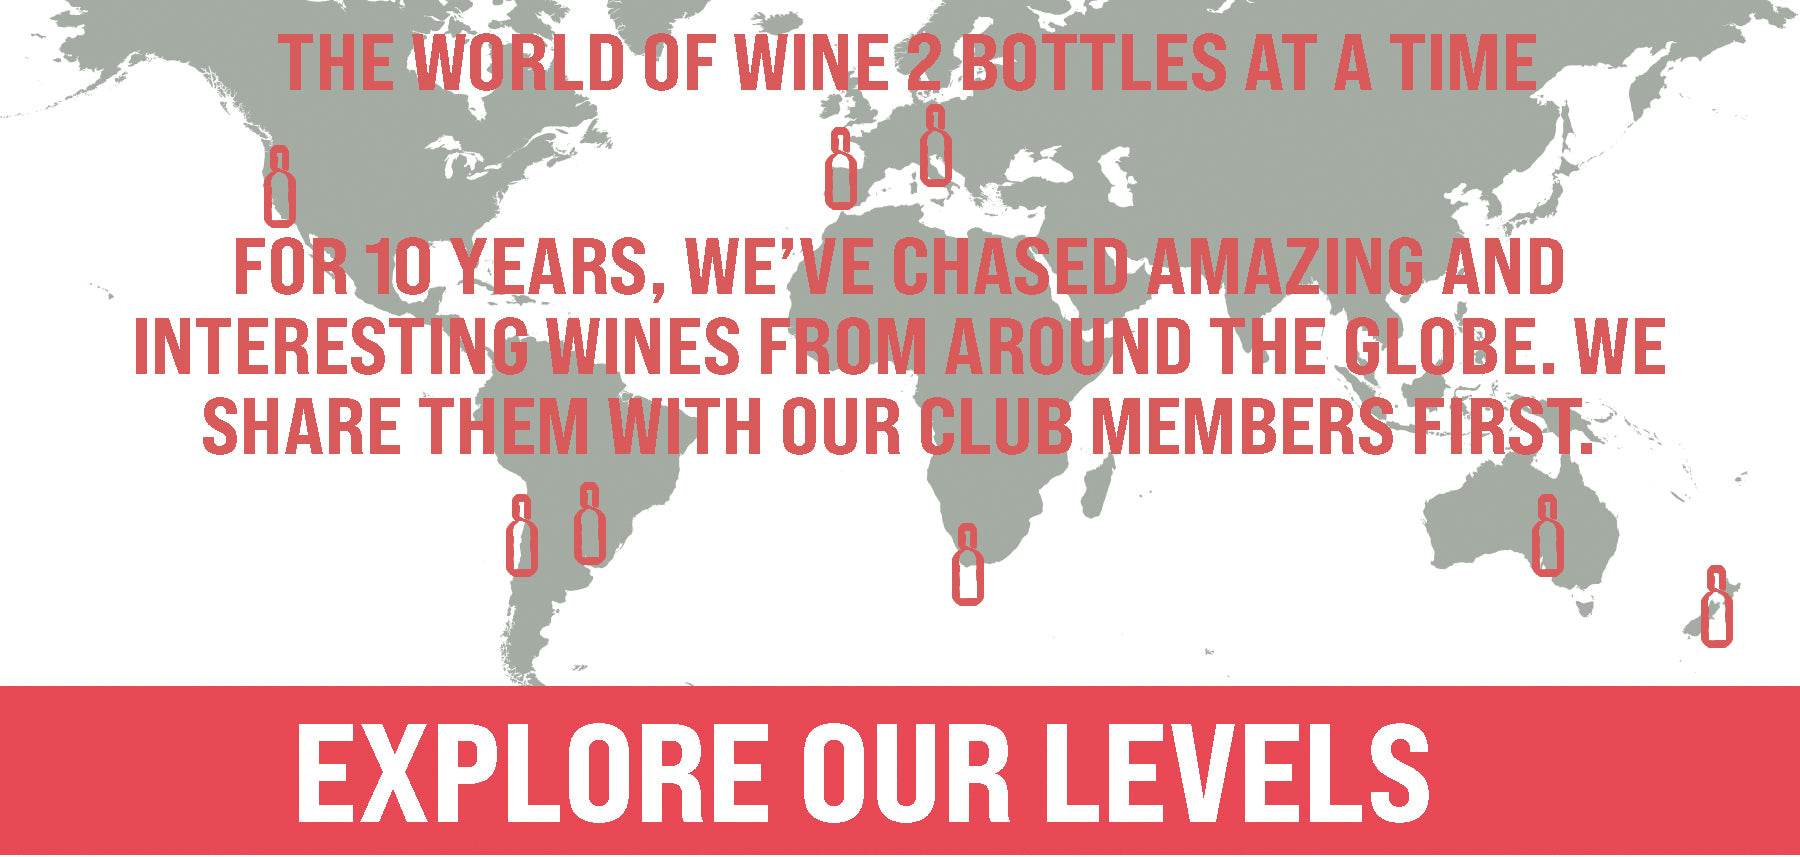 THE WORLD OF WINE 2 BOTTLES AT A TIME/ FOR 10 YEARS, WE'VE CHASED AMAZING AND INTERESTING WINES FROM AROUND THE GLOBE. WE SHARE THEM WITH OUR CLUB MEMBERS FIRST.